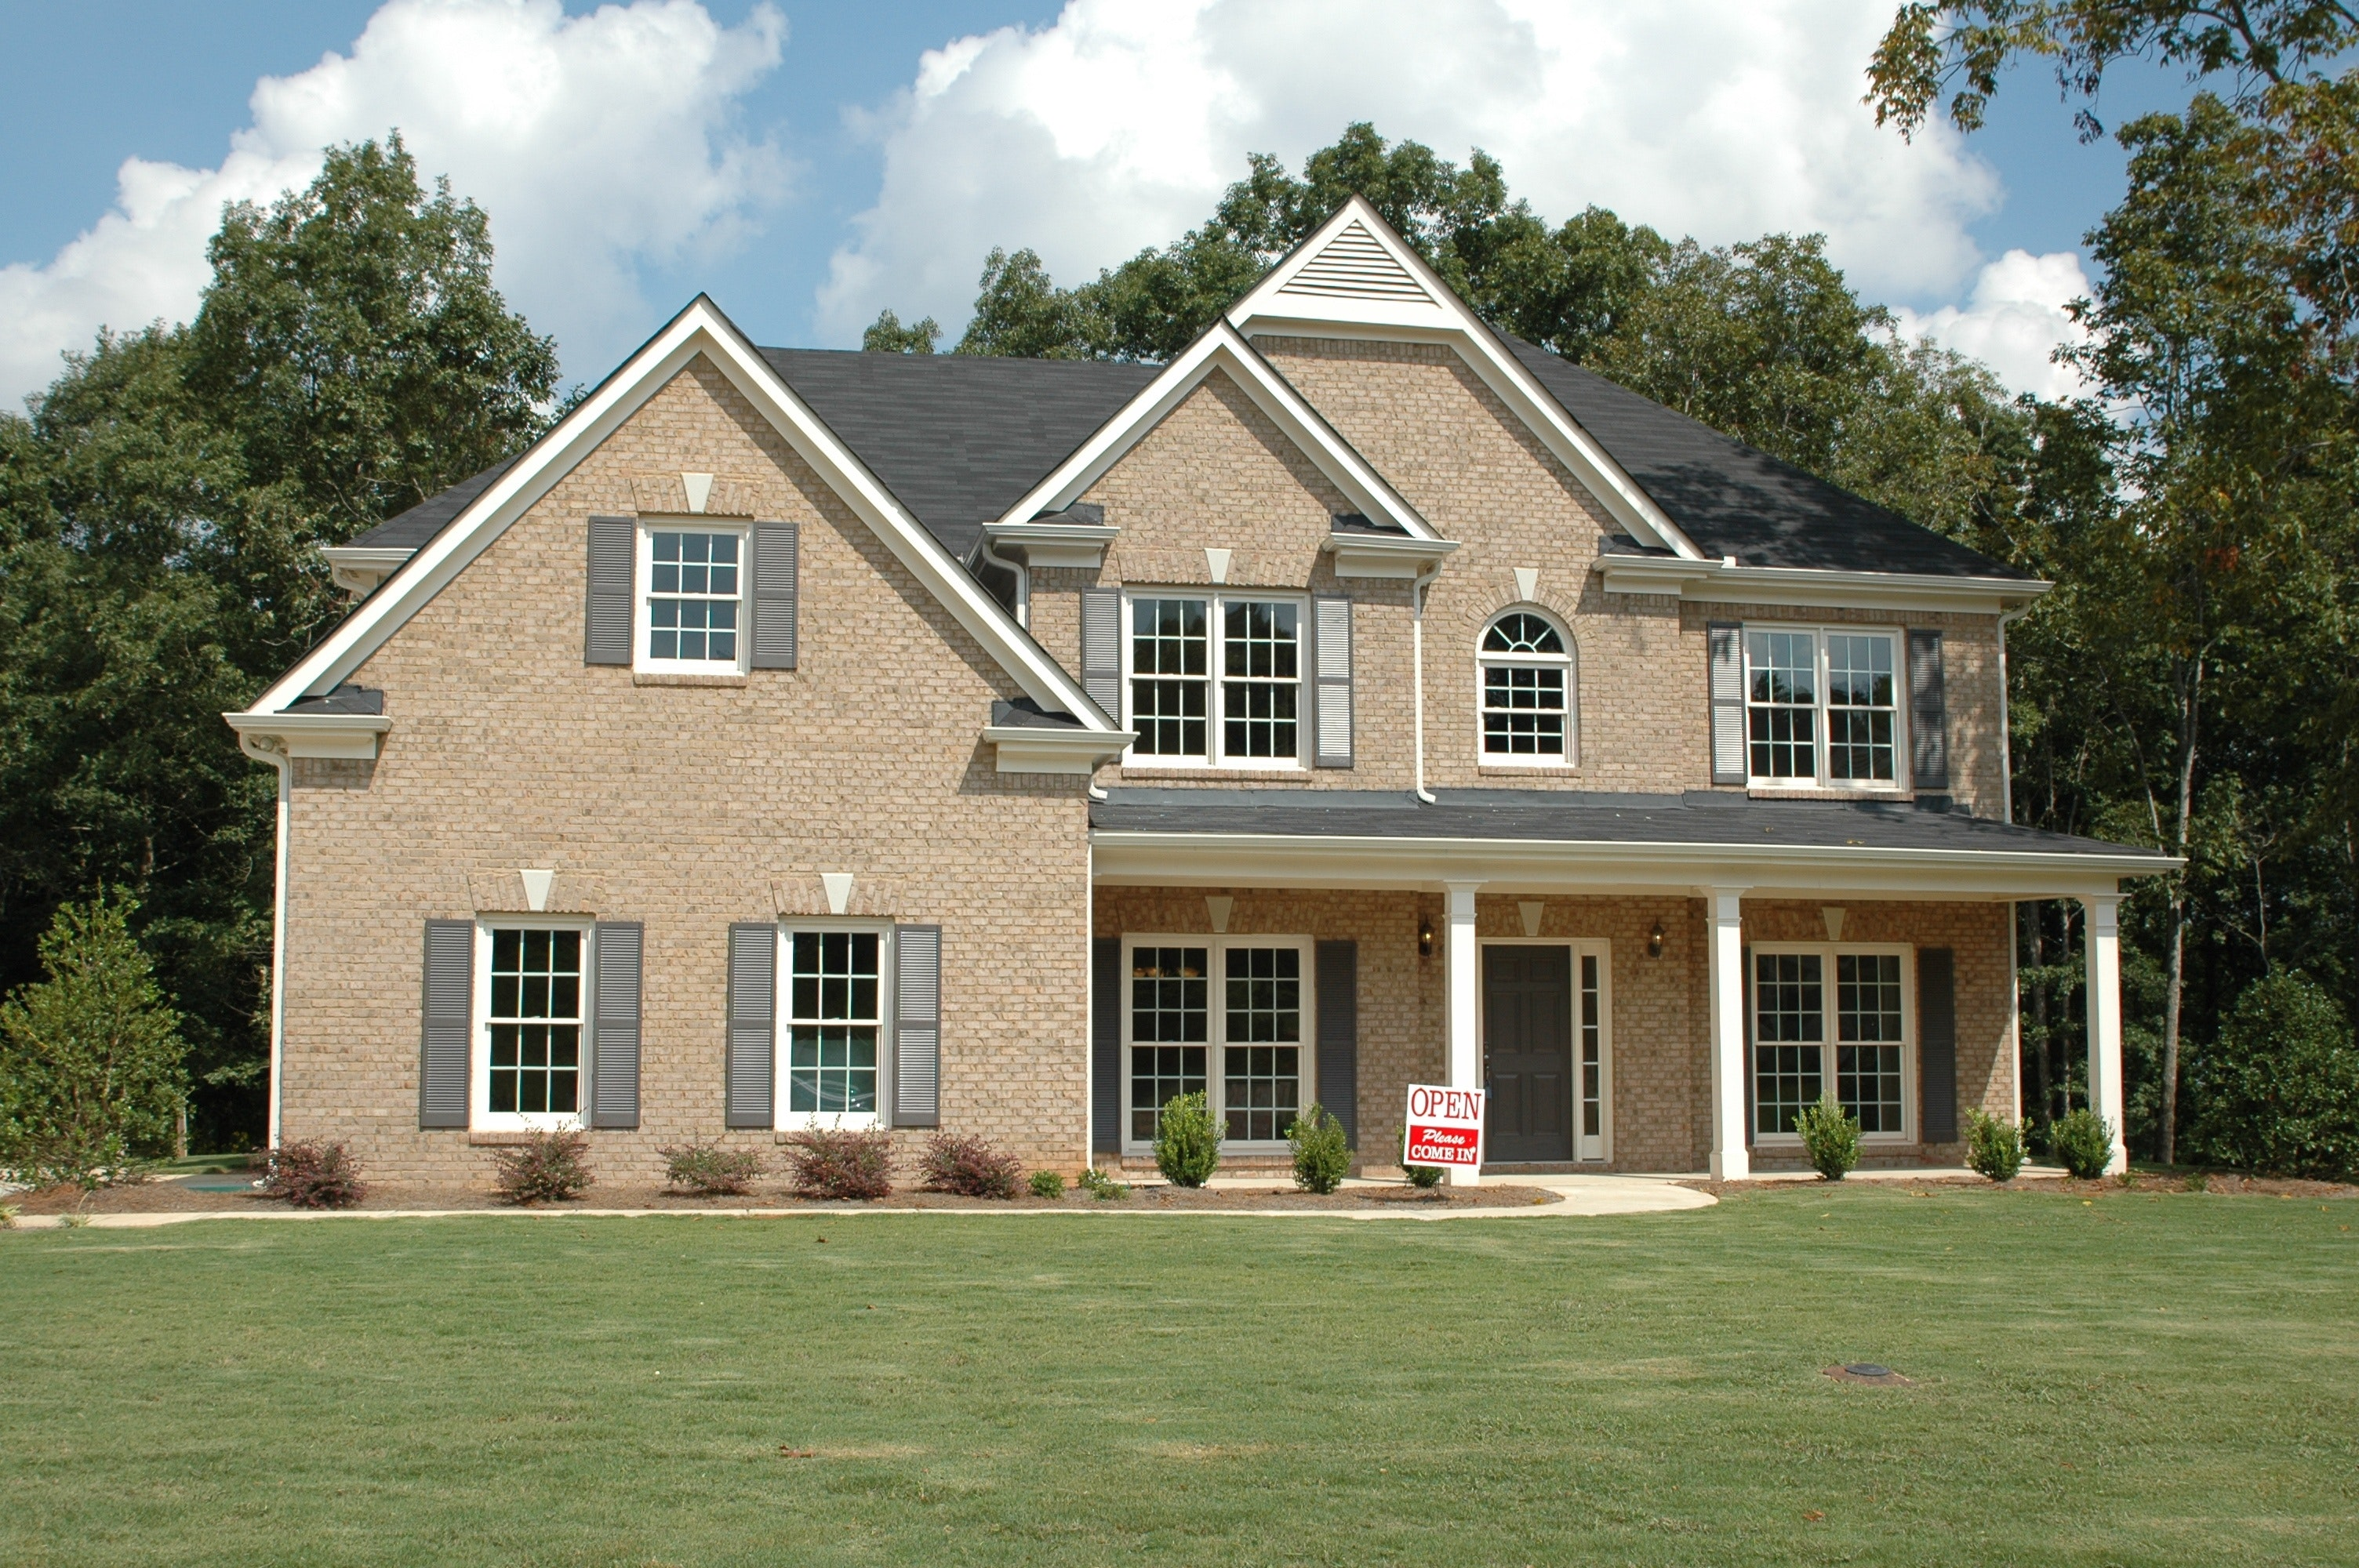 Gray 2 Storey House at Daytime, Property, Porch, Real estate, Windows, HQ Photo